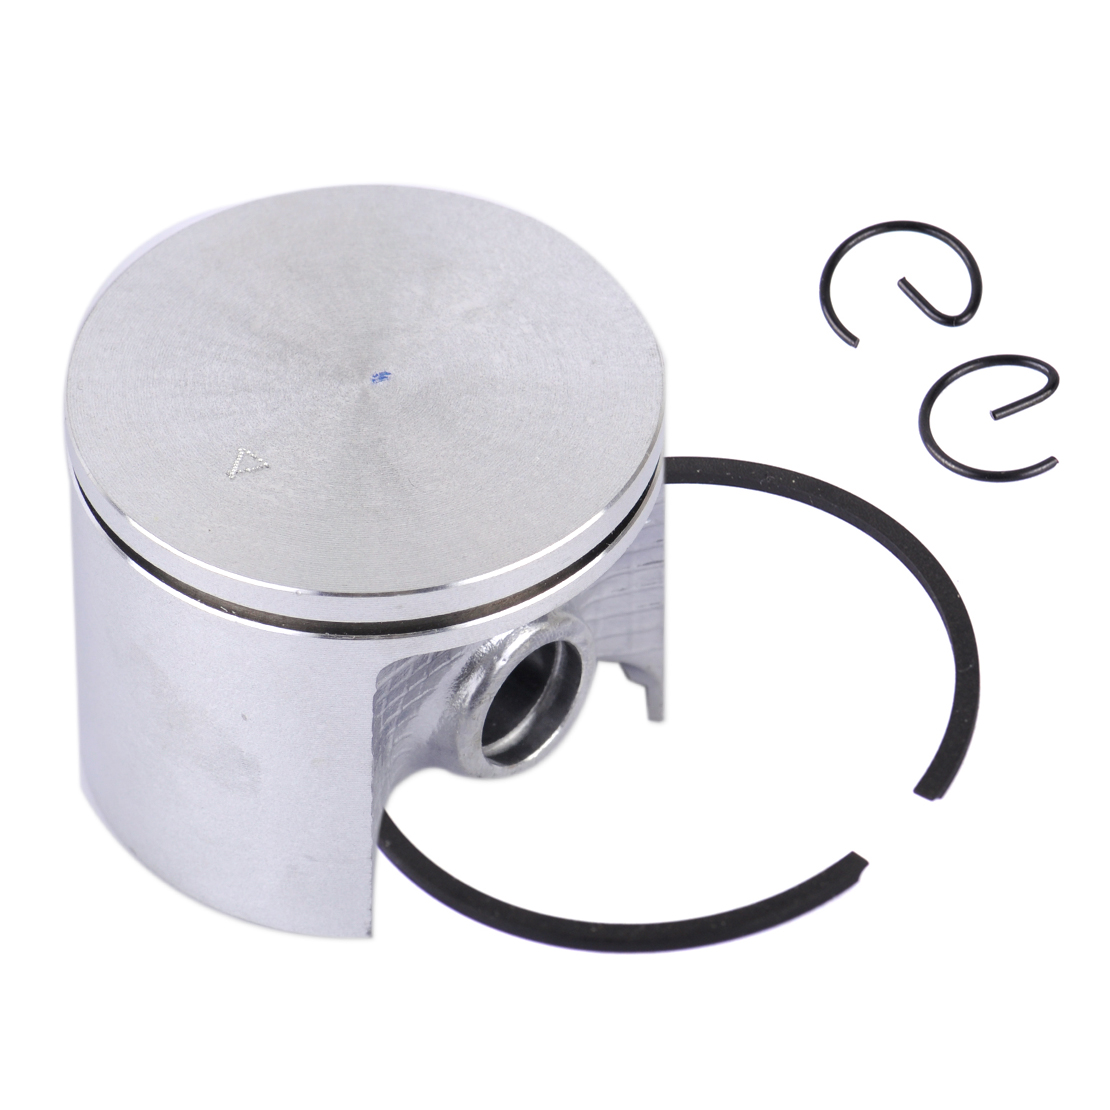 LETAOSK New 50mm Piston And Pin Ring Circlips Set Fit For HUSQVARNA 66 268 268K 268XP Chainsaw Accessories